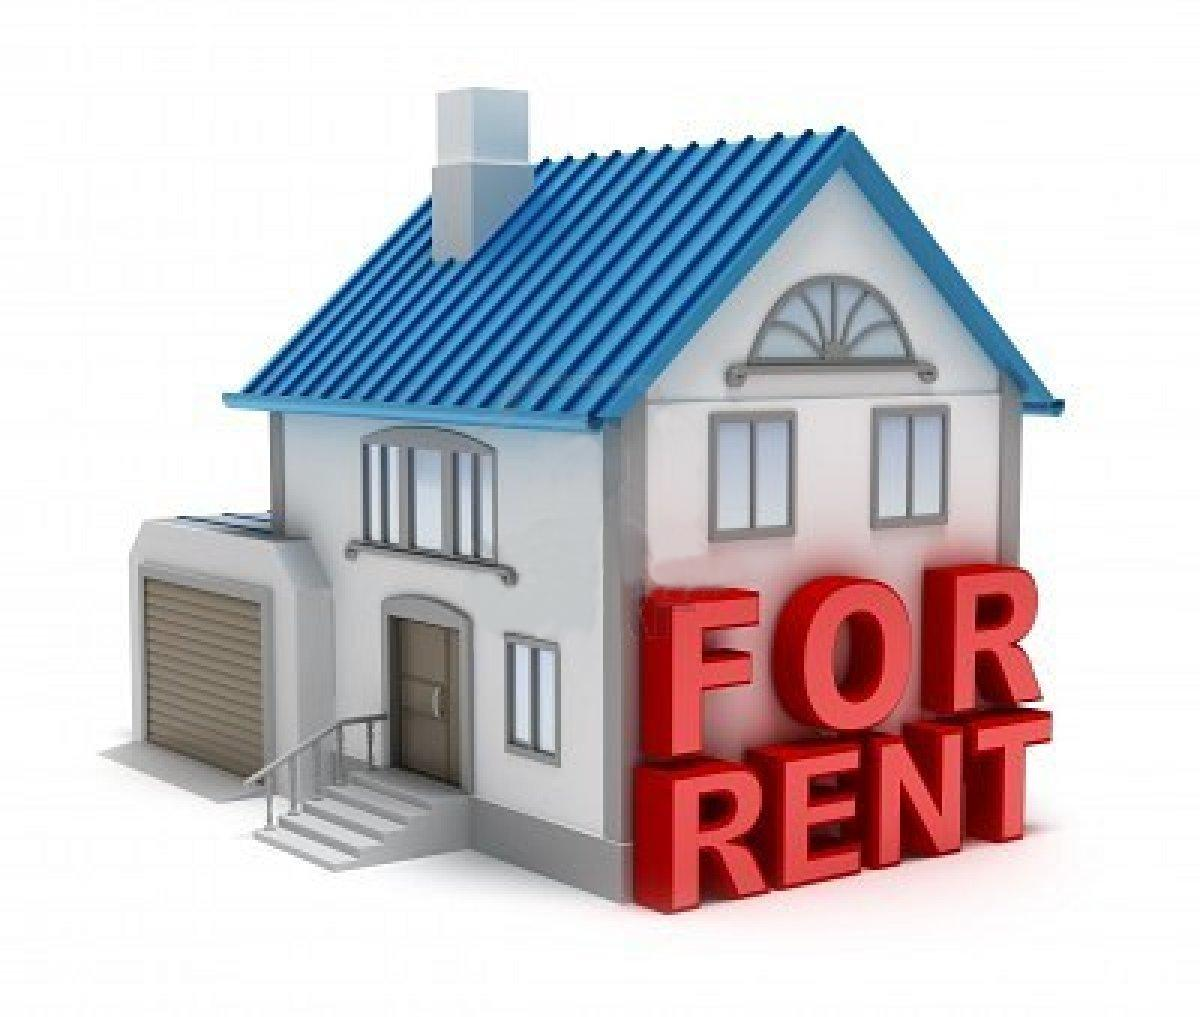 Single Family Rental Home Investments